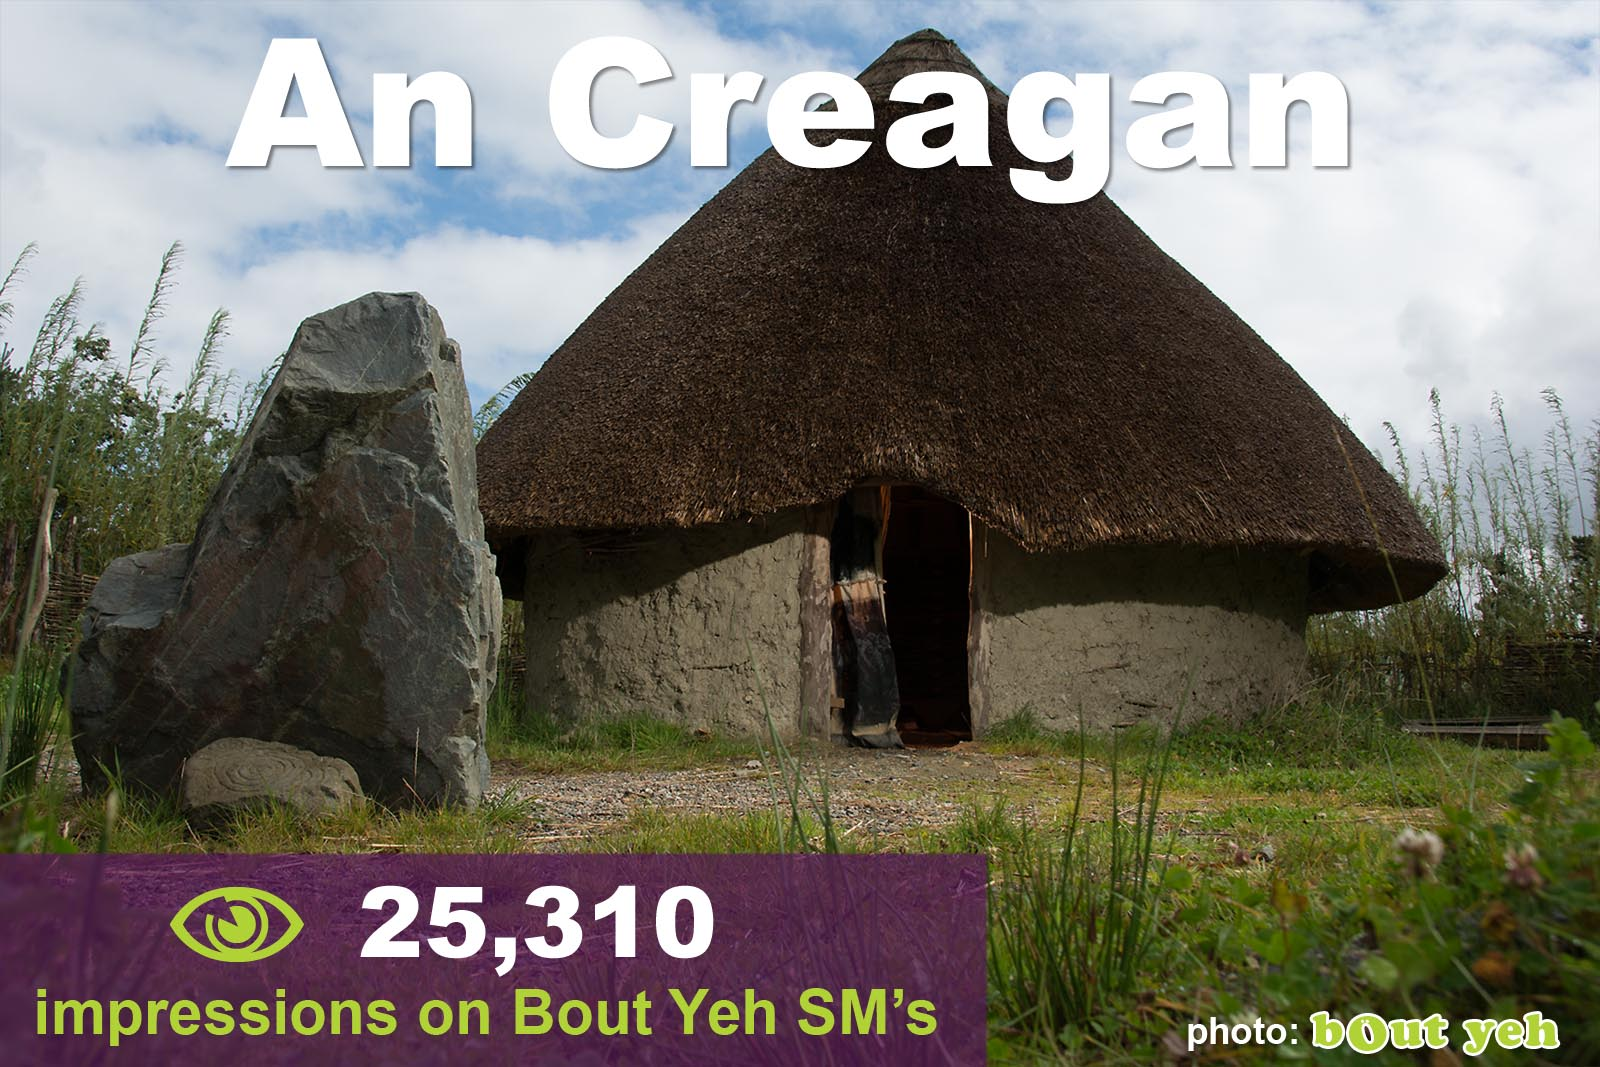 Social Media Marketing Consultants Belfast - An Creagan SMM campaign overview photo. Photo by Bout Yeh used in a Social Media Marketing campaign across Bout Yeh's Social Media platforms for An Creagan Northern Ireland.